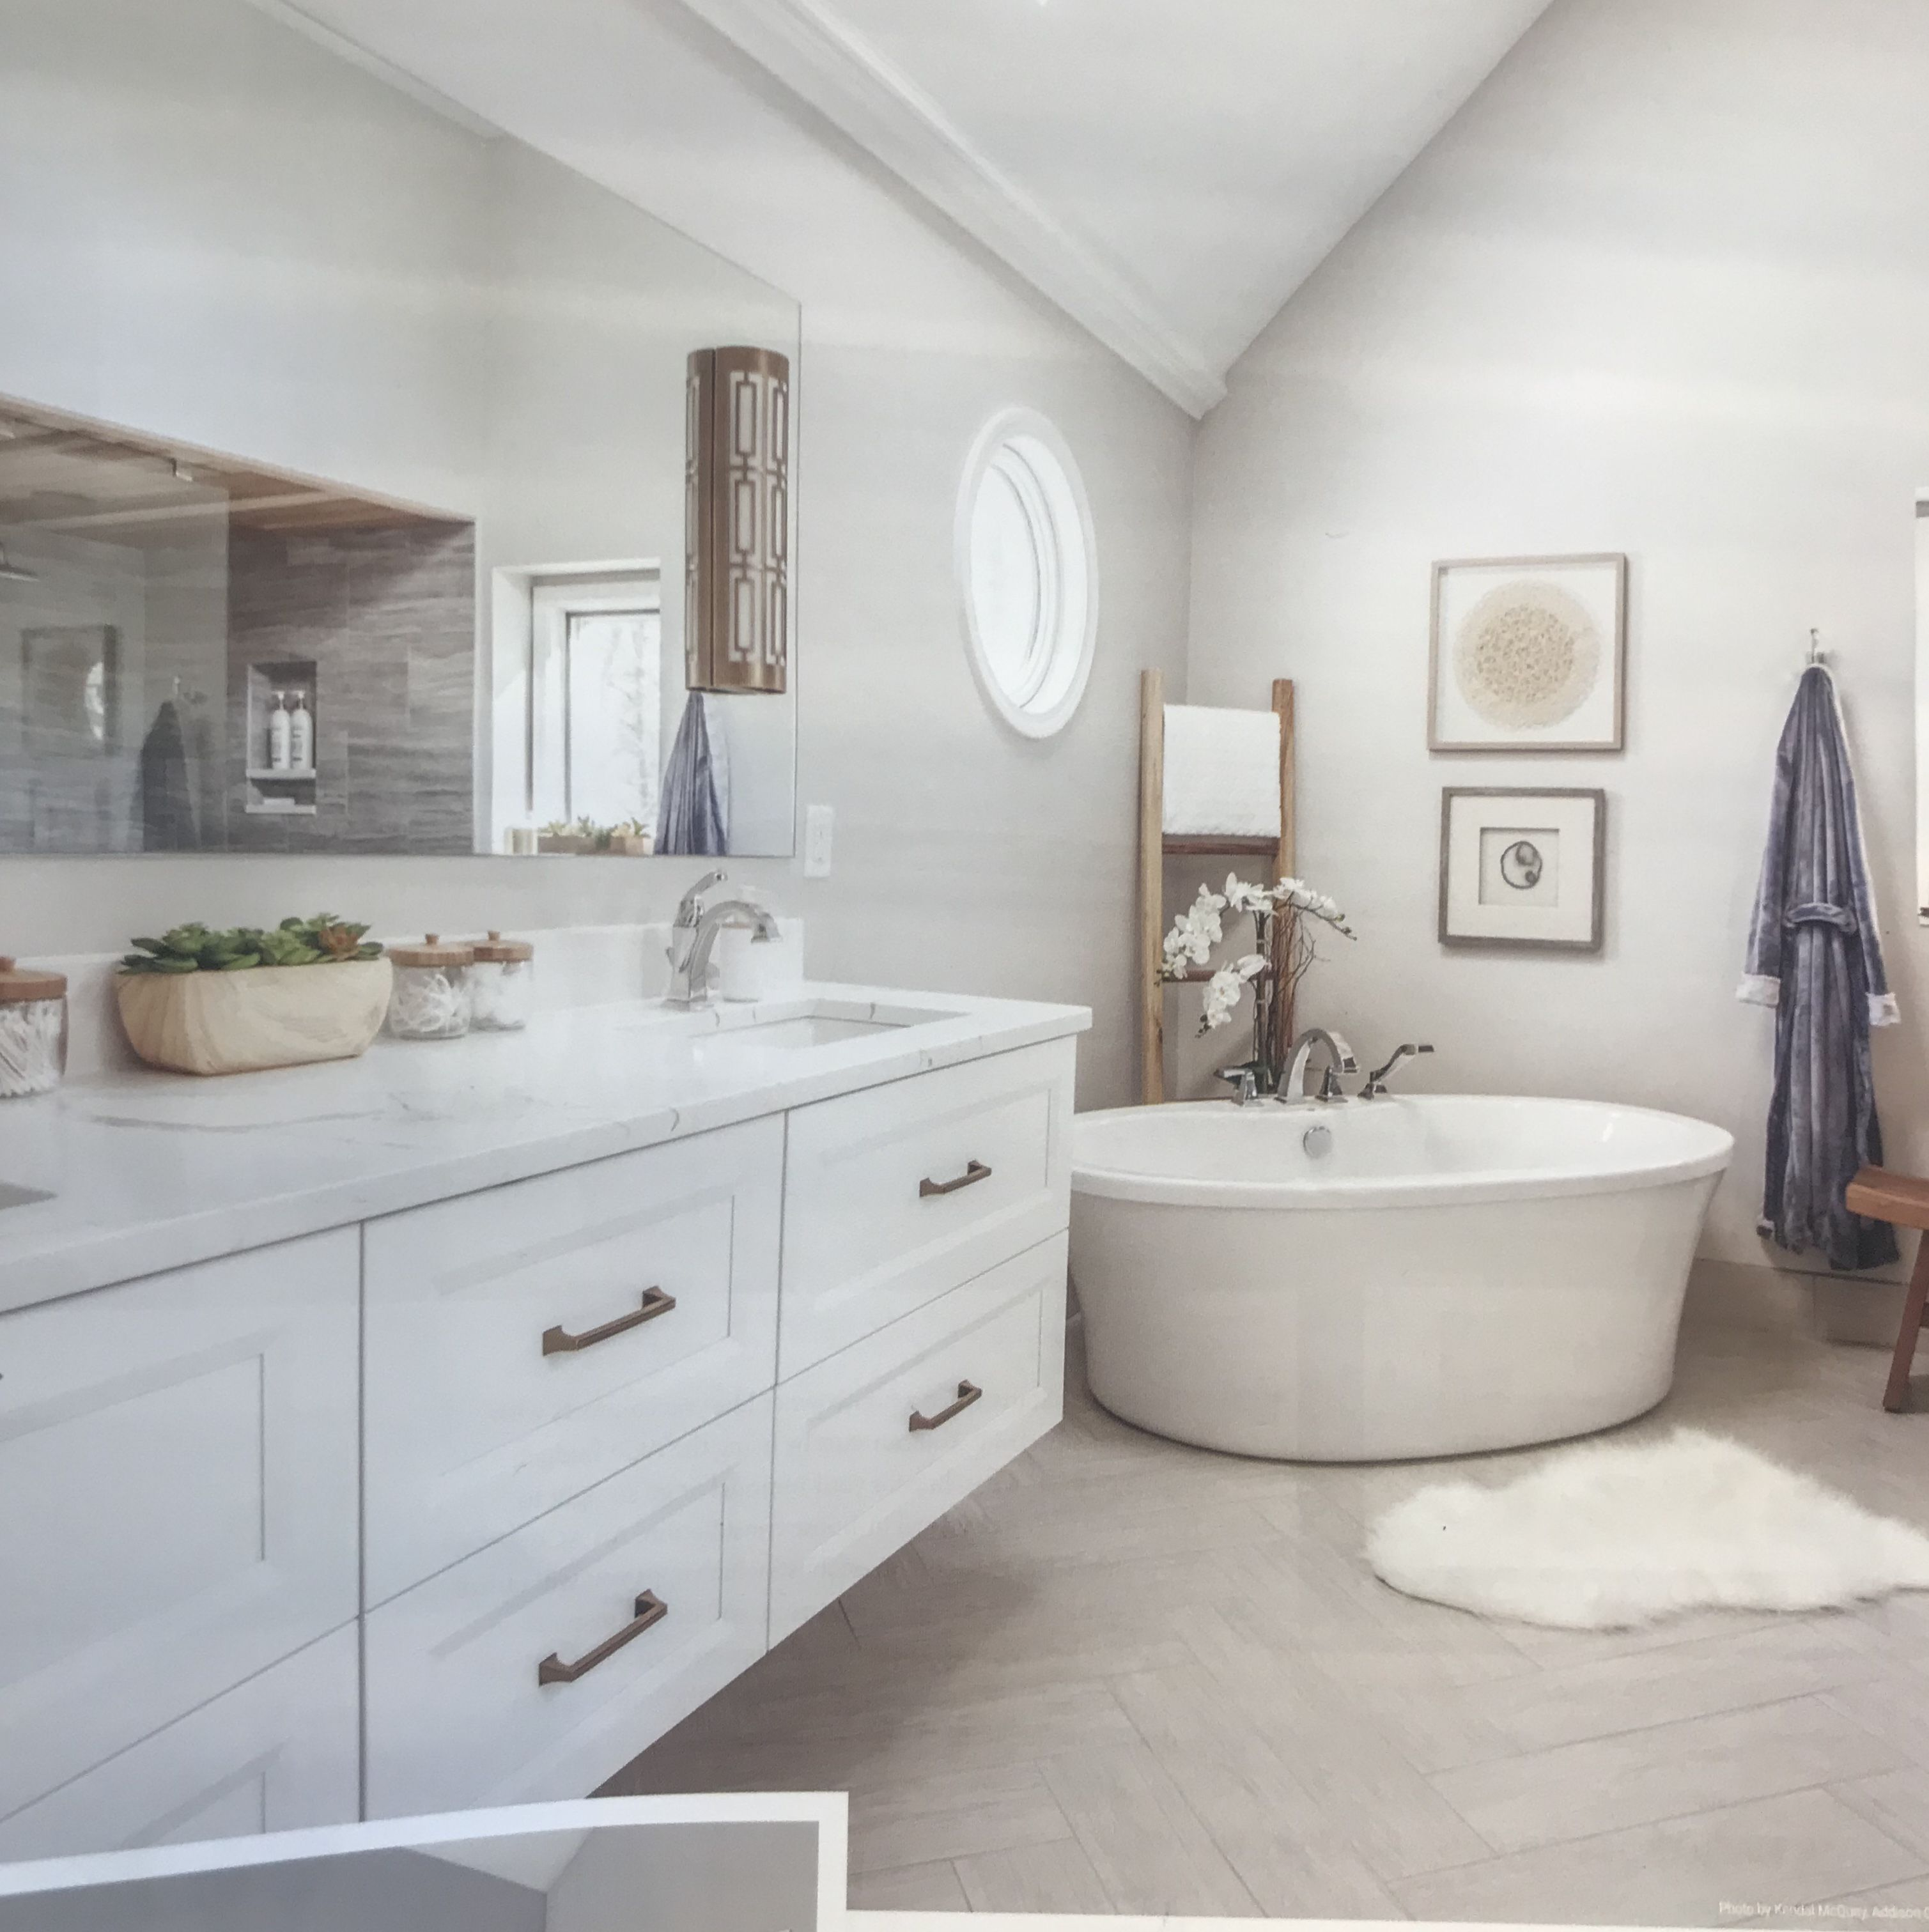 Pin By Allison Krill On Interior Design Master Bath In 2020 Interior Design Masters Design Master Bathroom Vanity